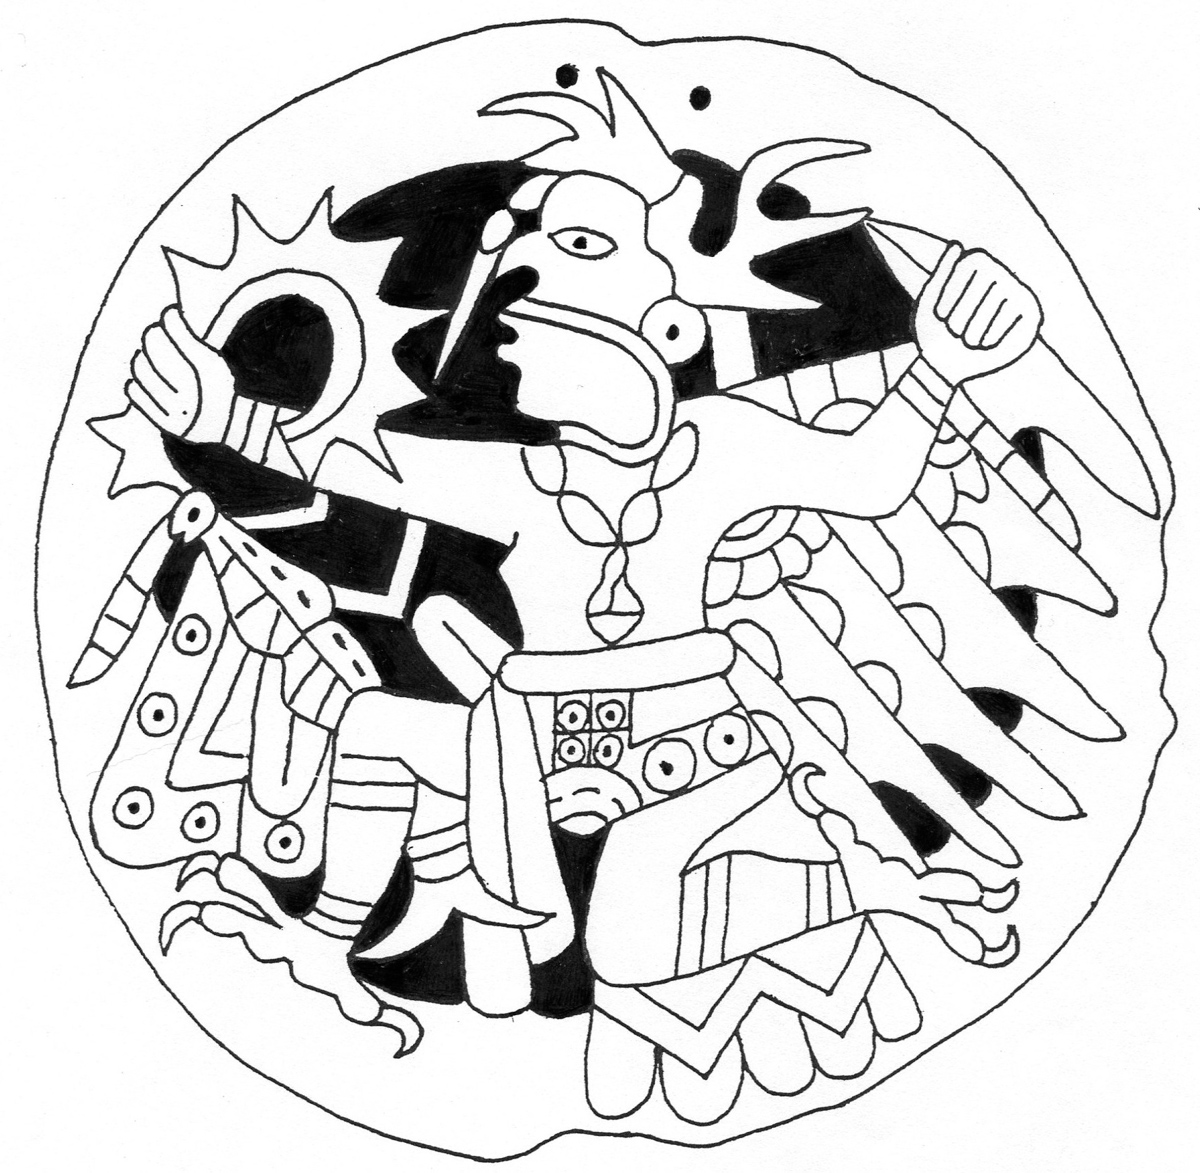 Eagle-warrior – with cutouts